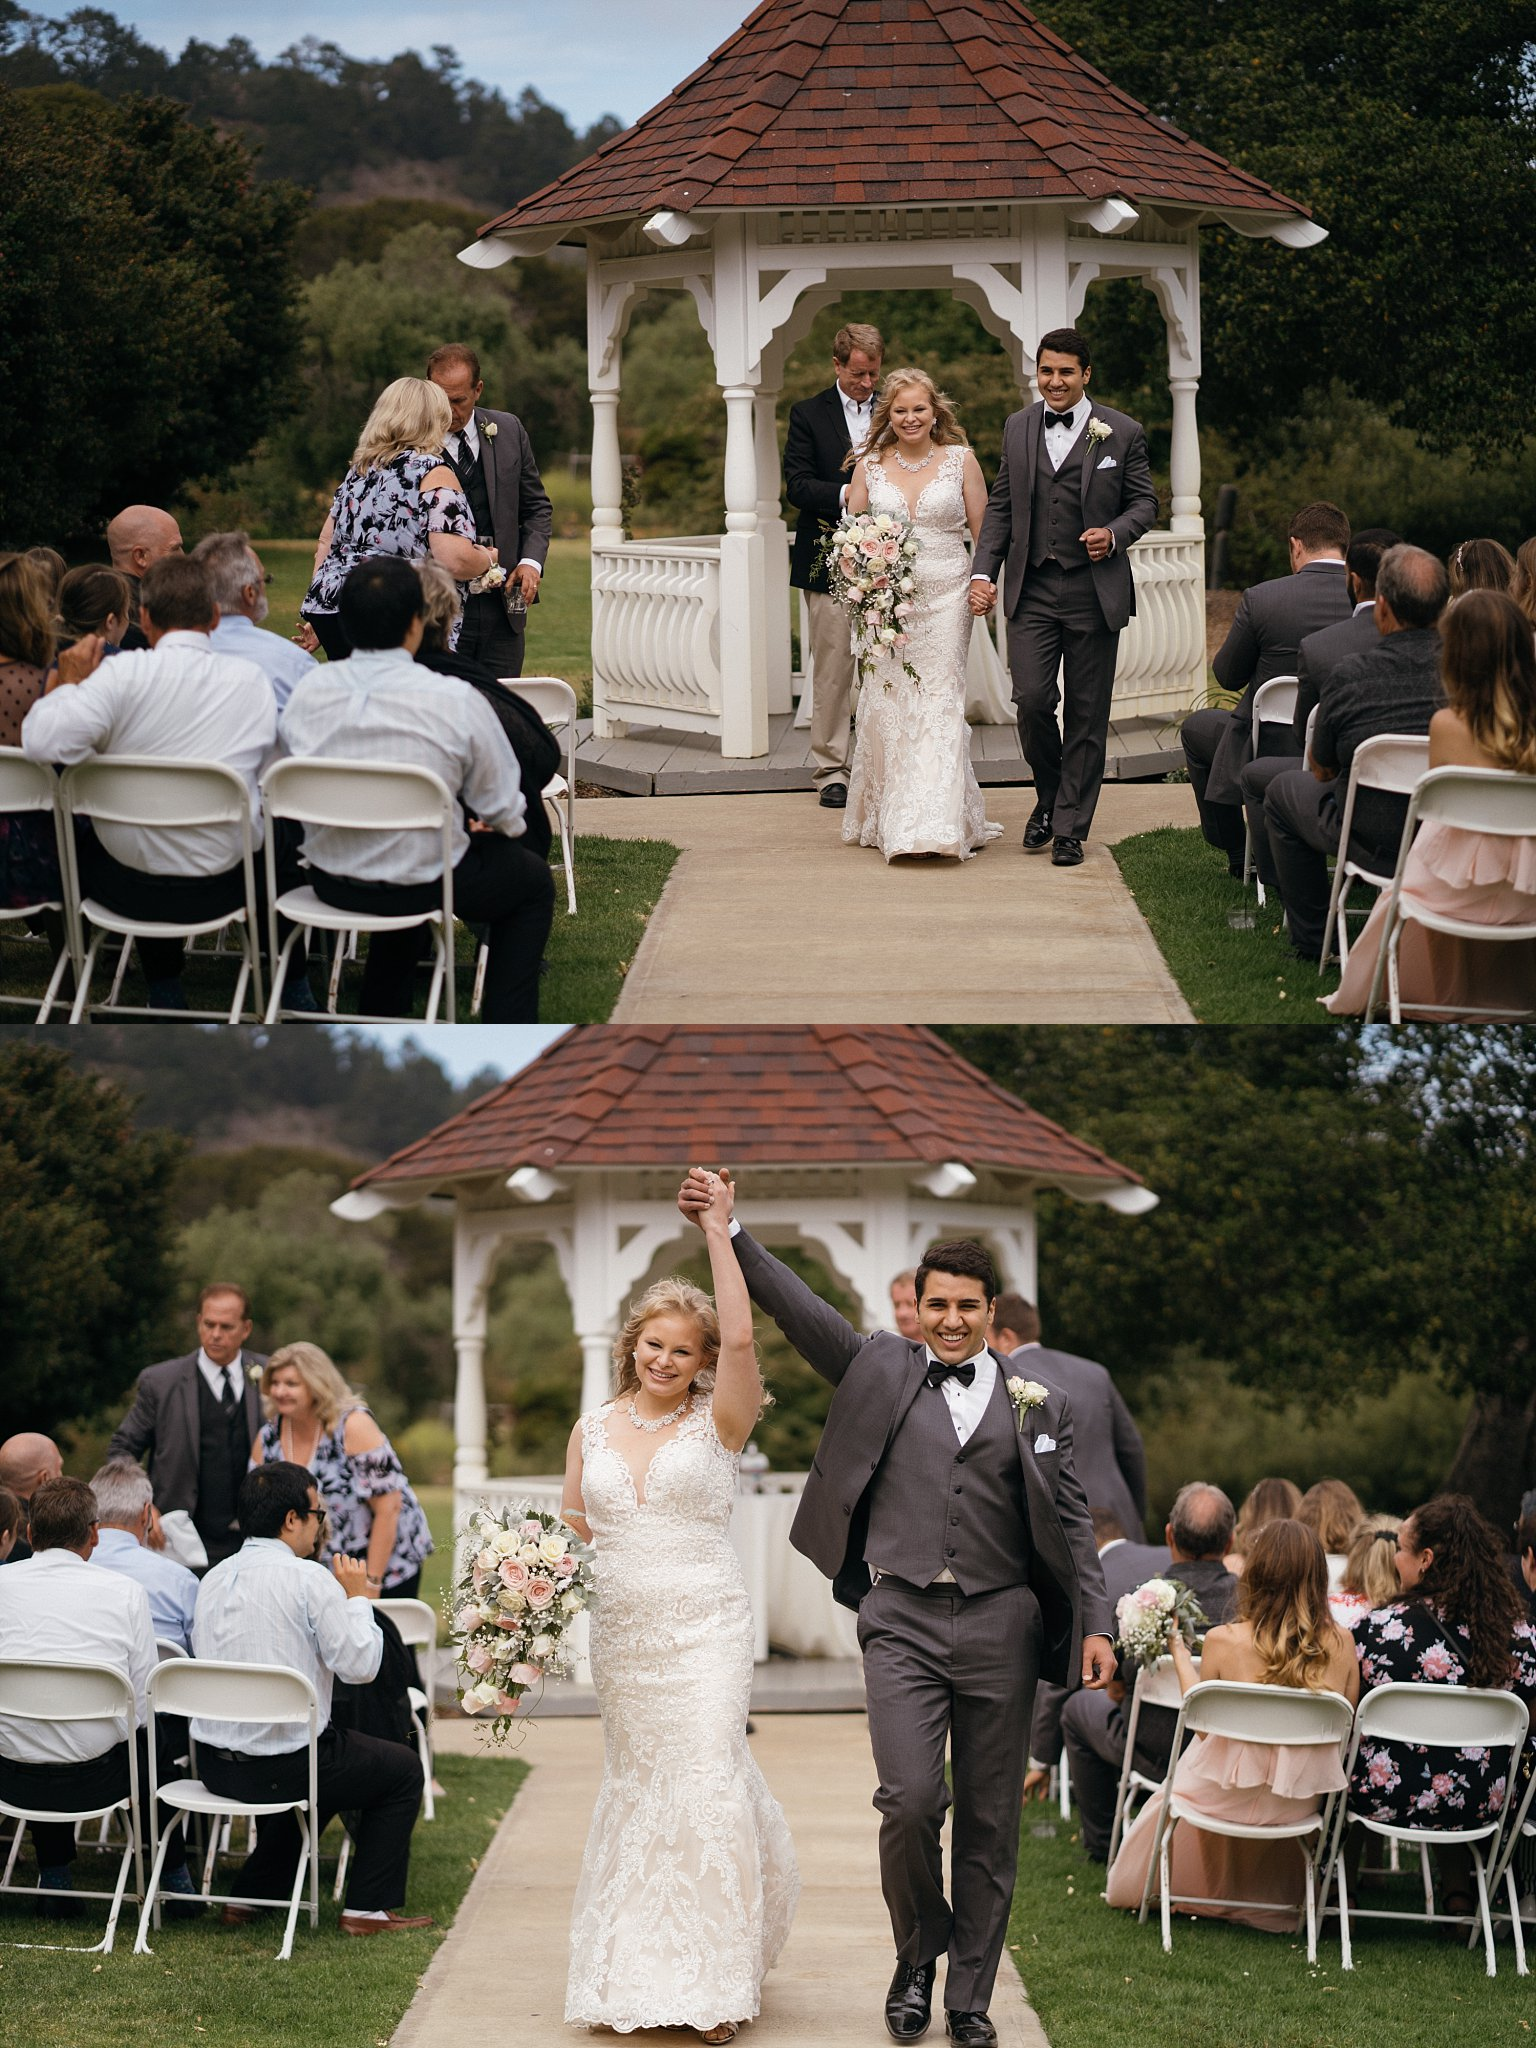 monterey-wedding-photographer-pebble-beach-church-in-the-forest-wedding-bride-groom-morgan-anthony_0047.jpg